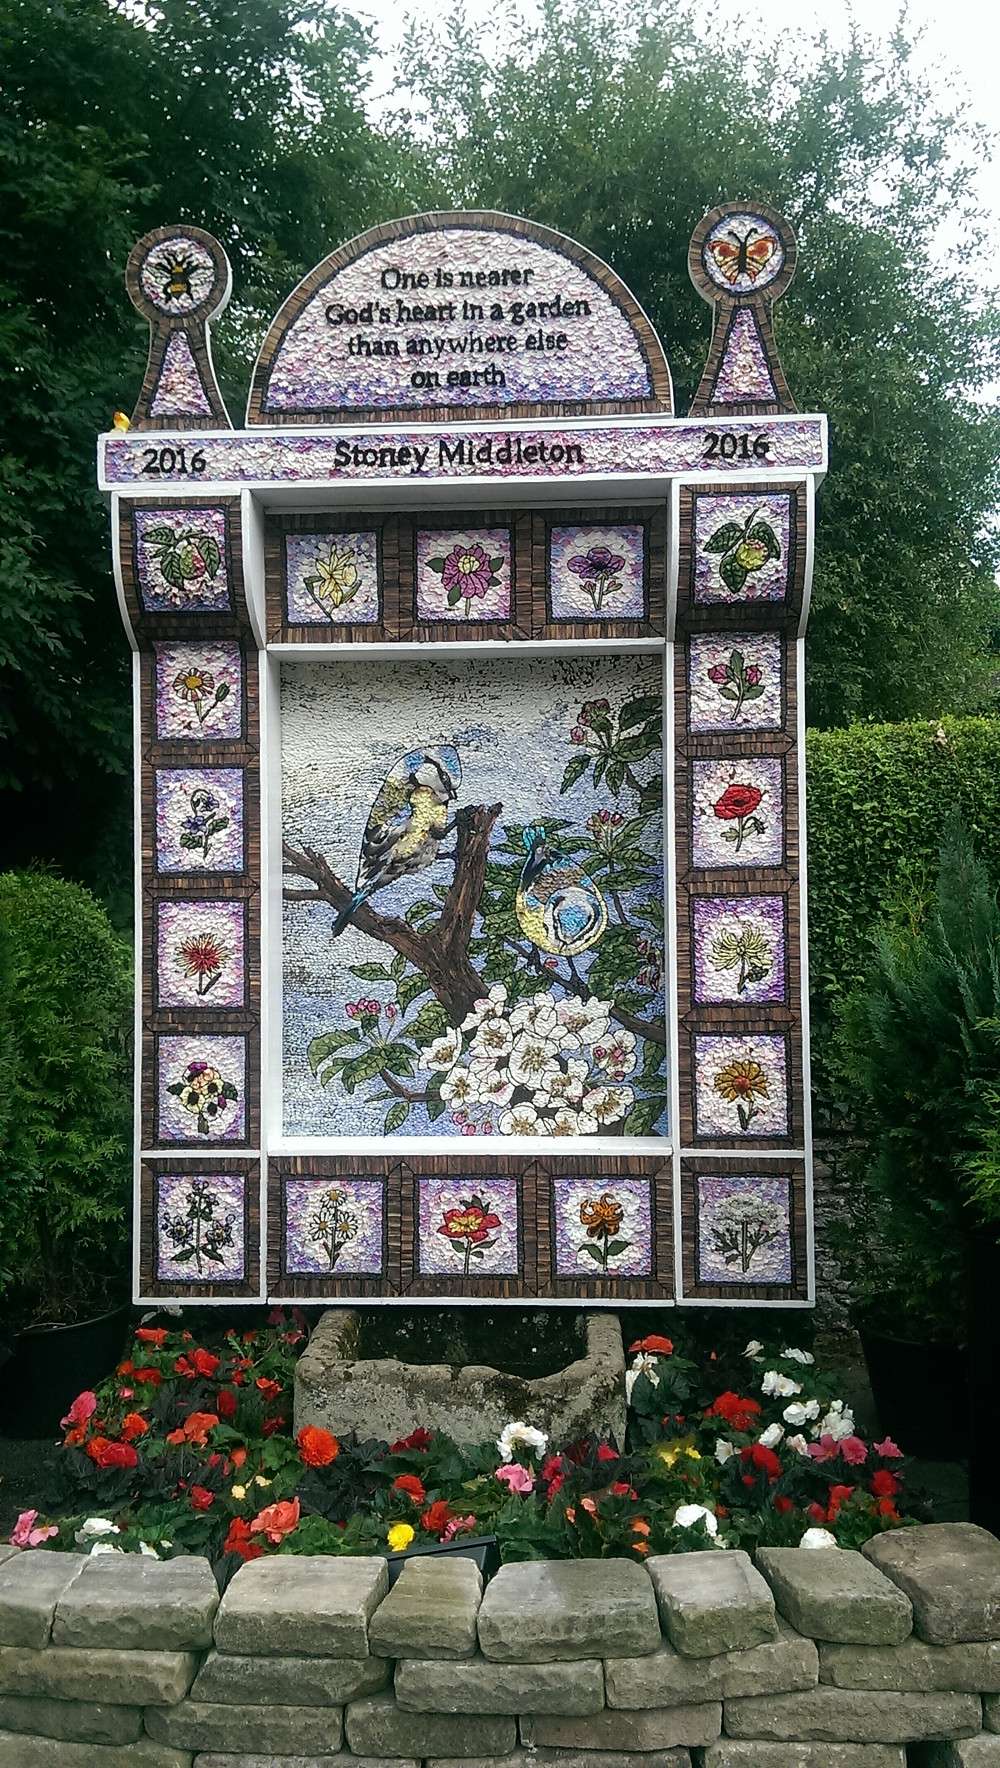 Well Dressing at Stoney Middleton in the Peak District 2016